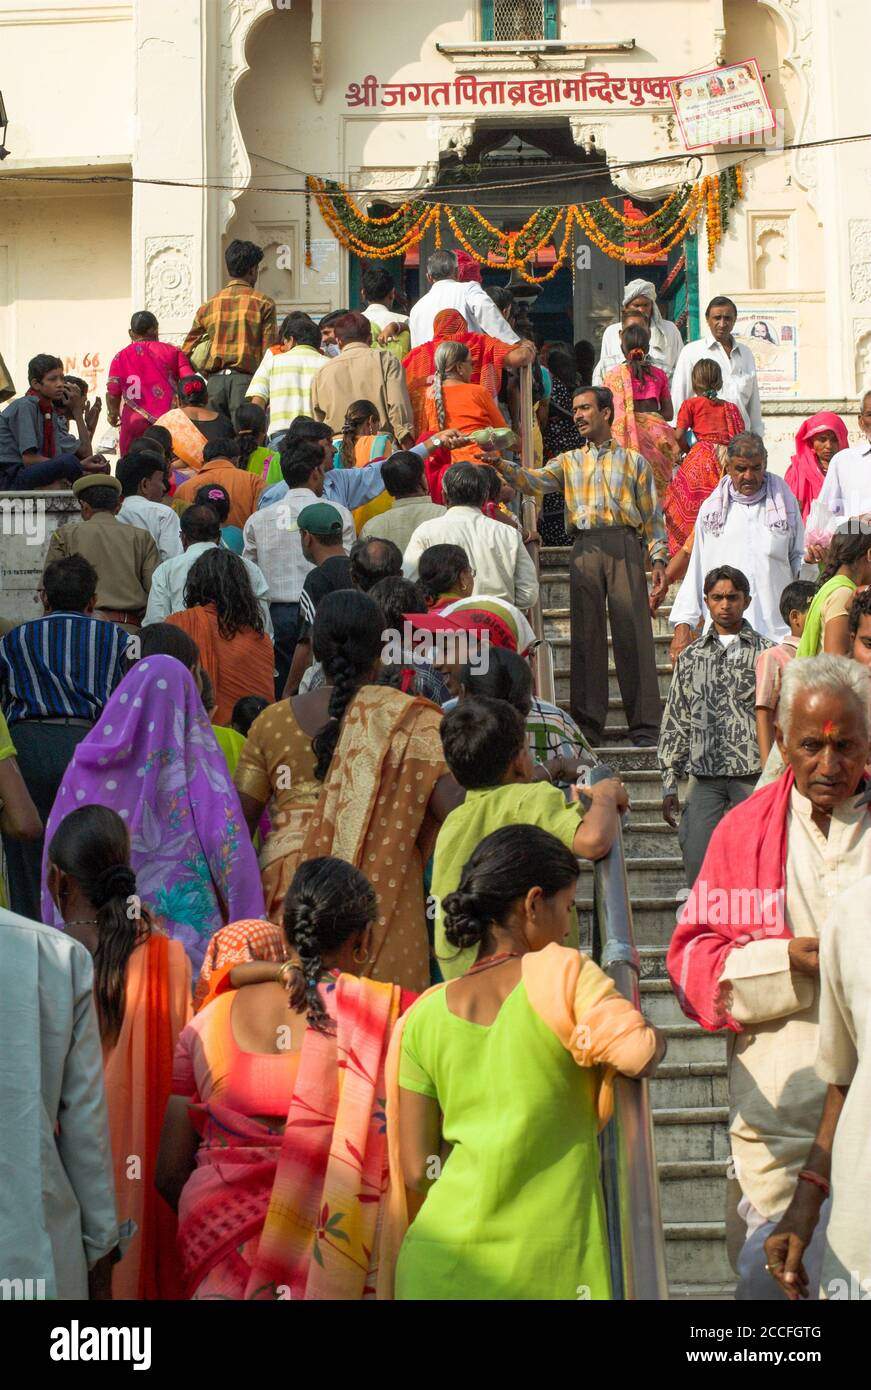 Hindu pilgrims crowd into the Brahma Temple at Pushkar, Rajasthan, during the annual Camel Fair Stock Photo